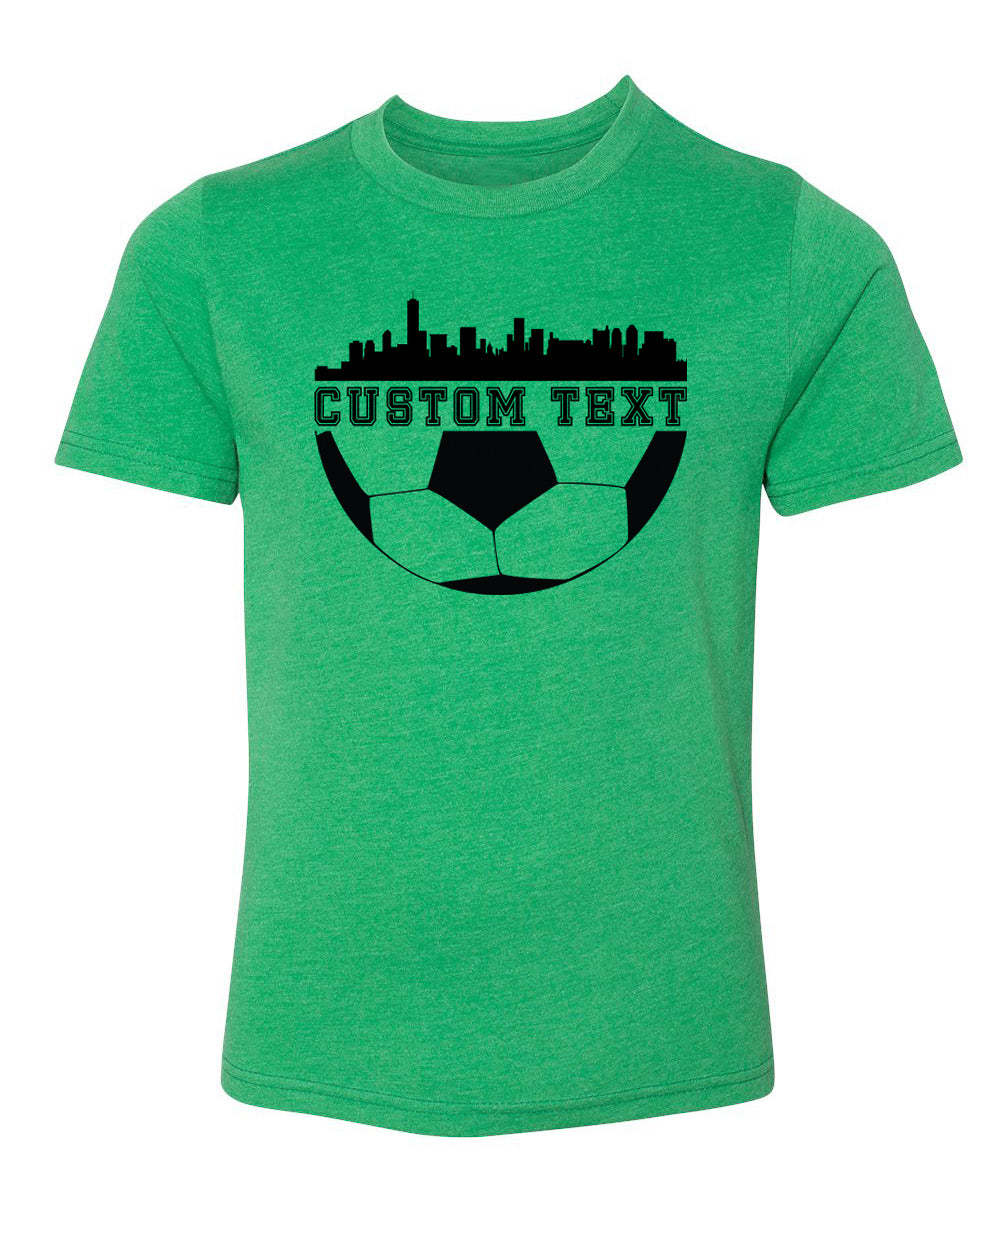 Shirt - Custom Soccer T-shirt With City Skyline Kids Personalized Soccer T Shirts